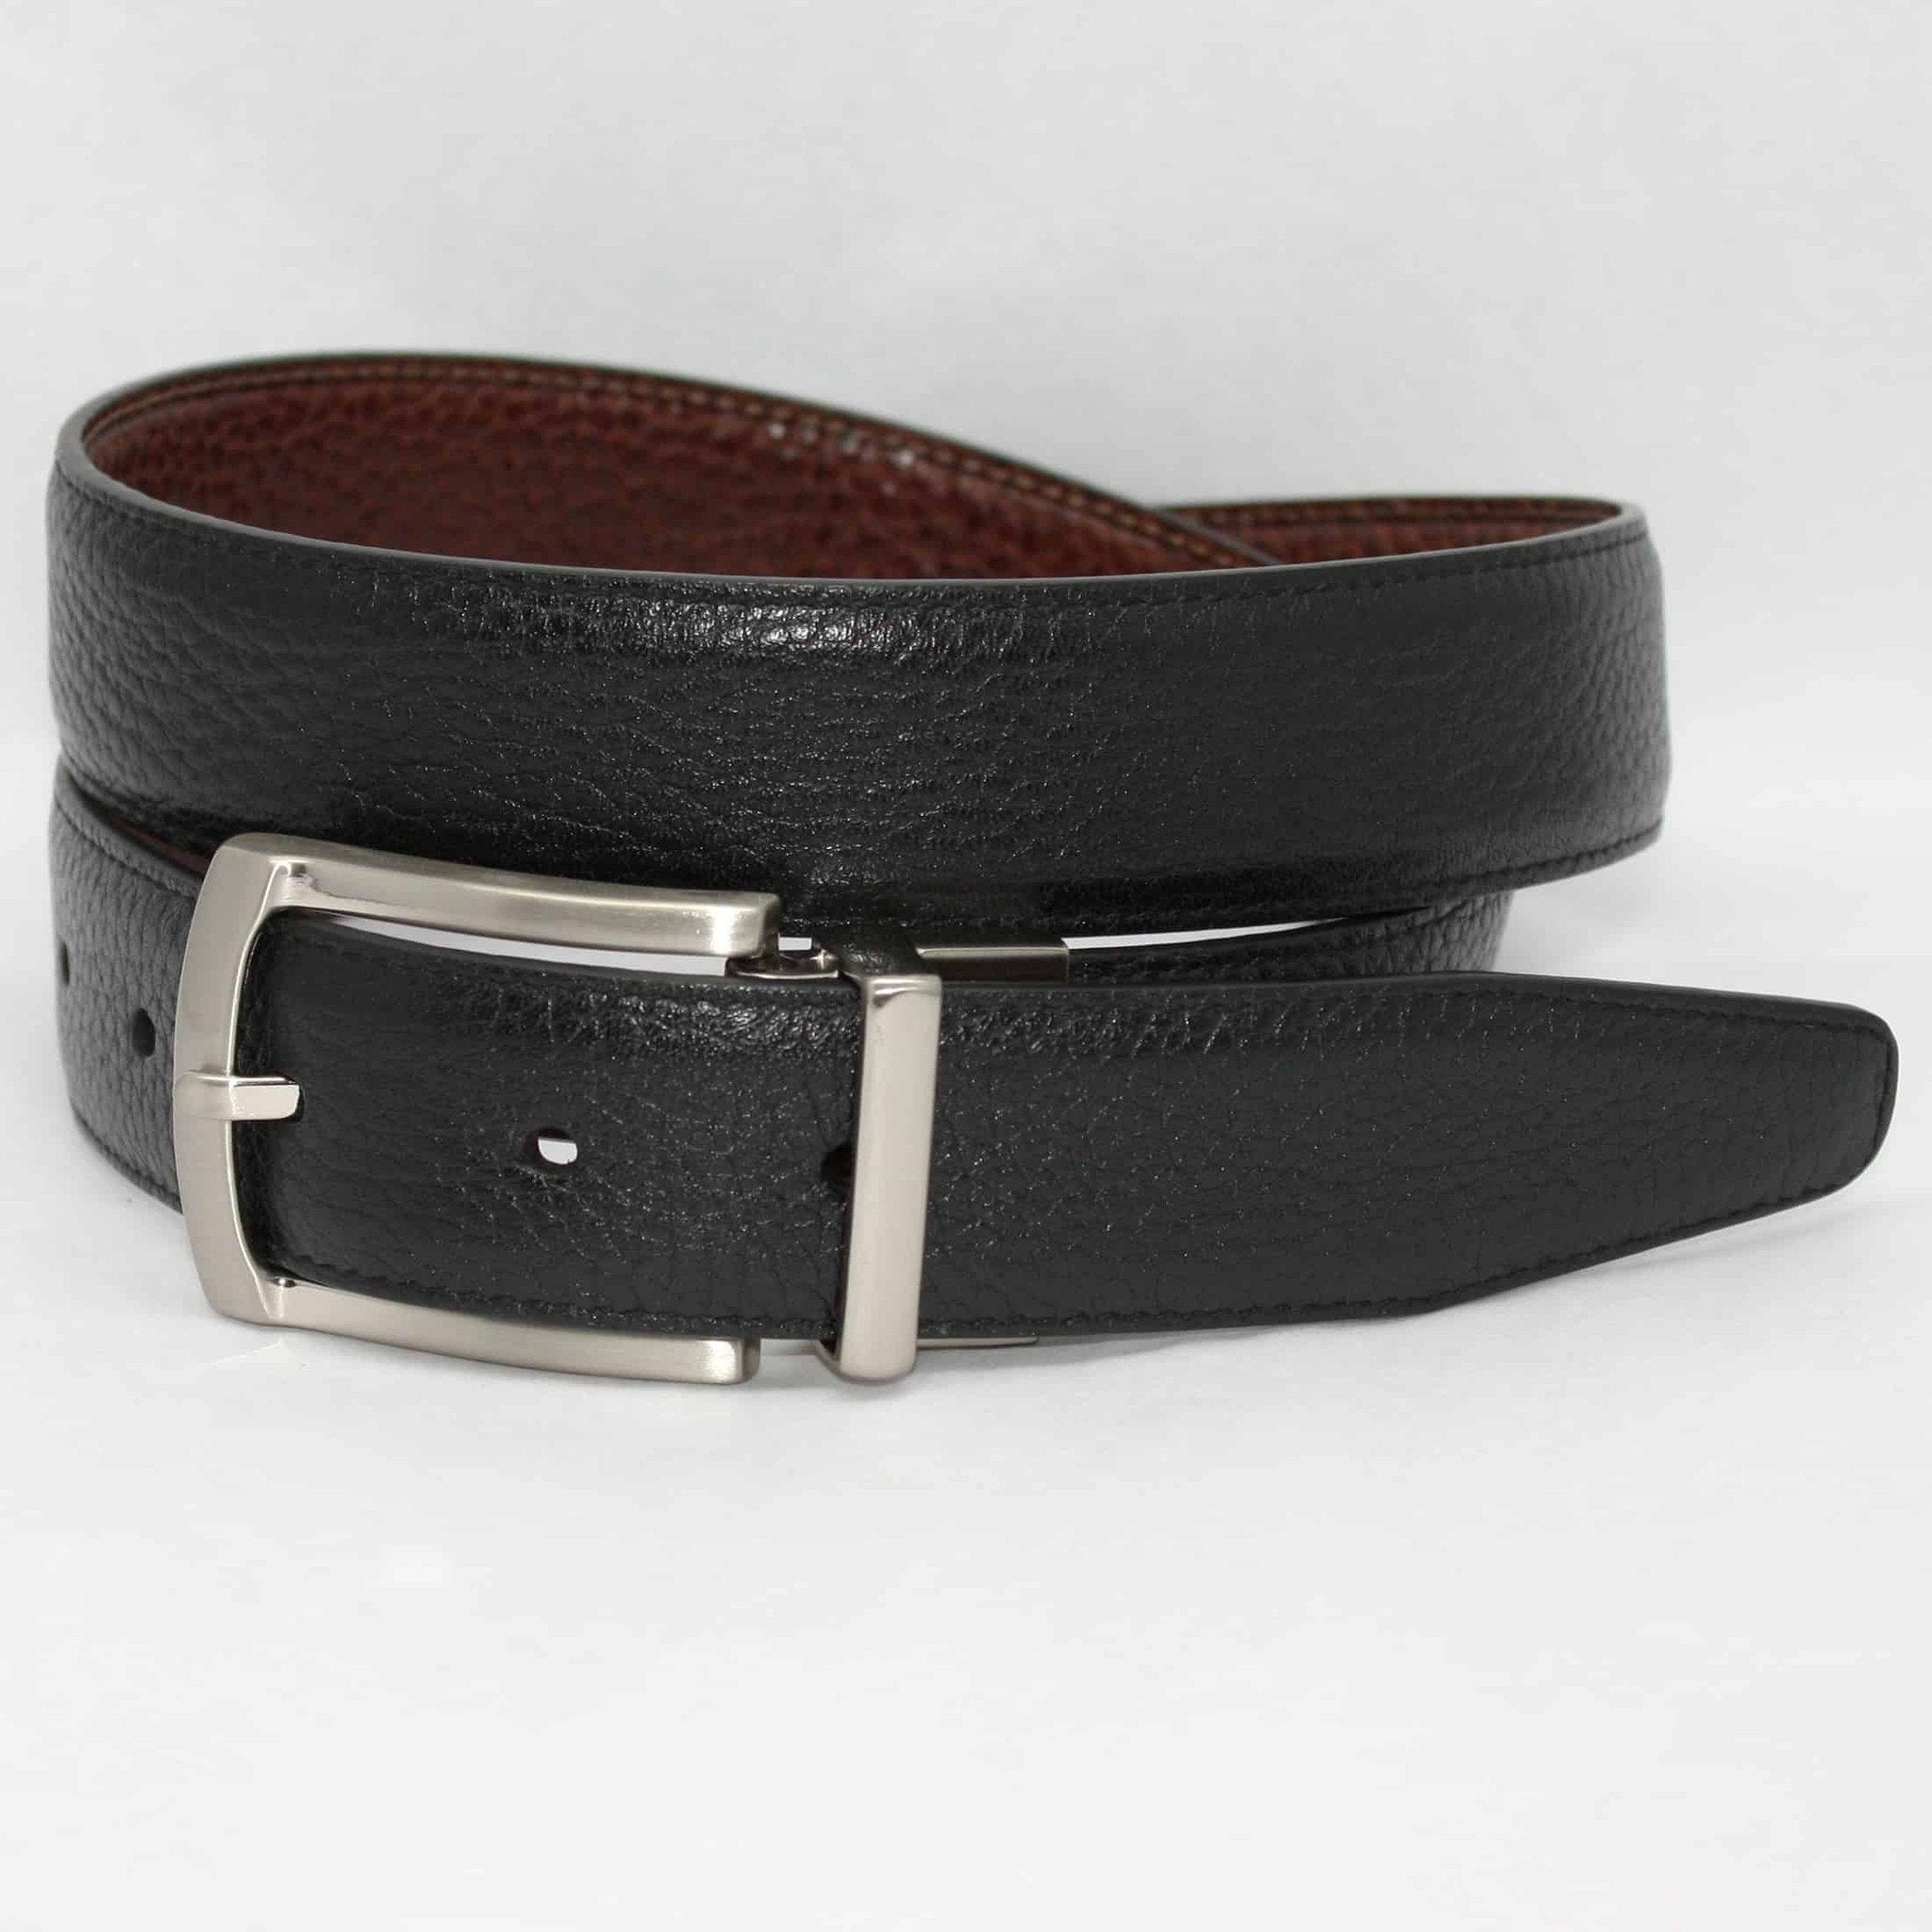 Pebbled Veal to Burnished Veal - Reversible Black to Cognac,BELT,GentRow.com, | GentRow.com